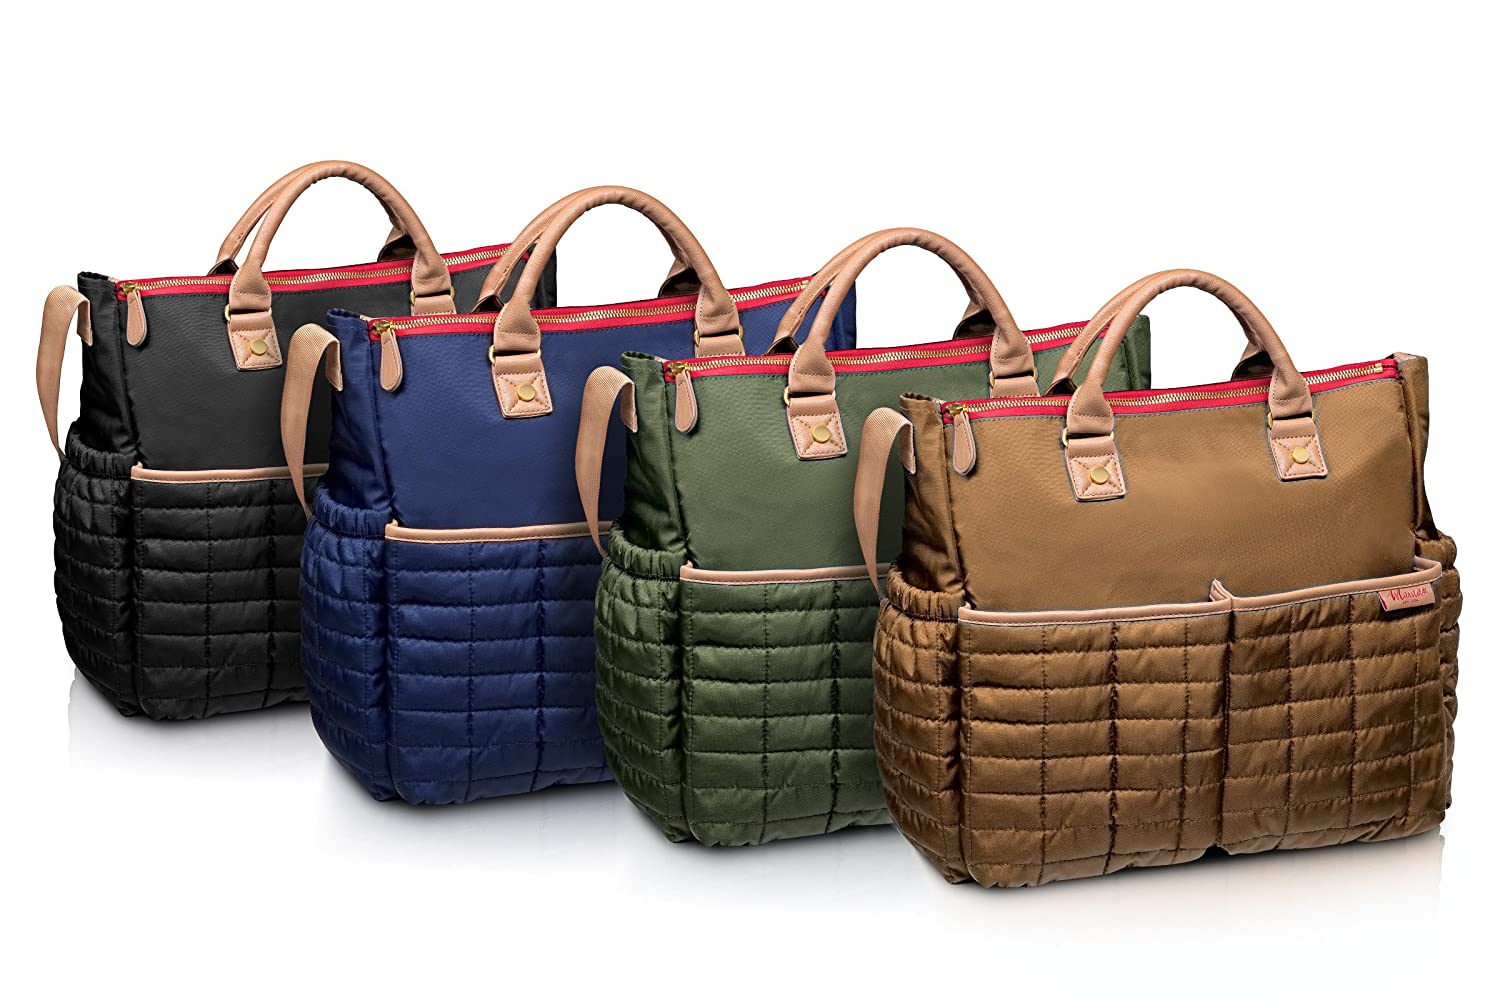 5df370bf038e Amazon.com : Diaper Bag, Nappy Bag by Maman - with Matching Changing Pad -  Stylish Designer Tote for Moms - for Baby Boys and Girls - PATENTED : Baby